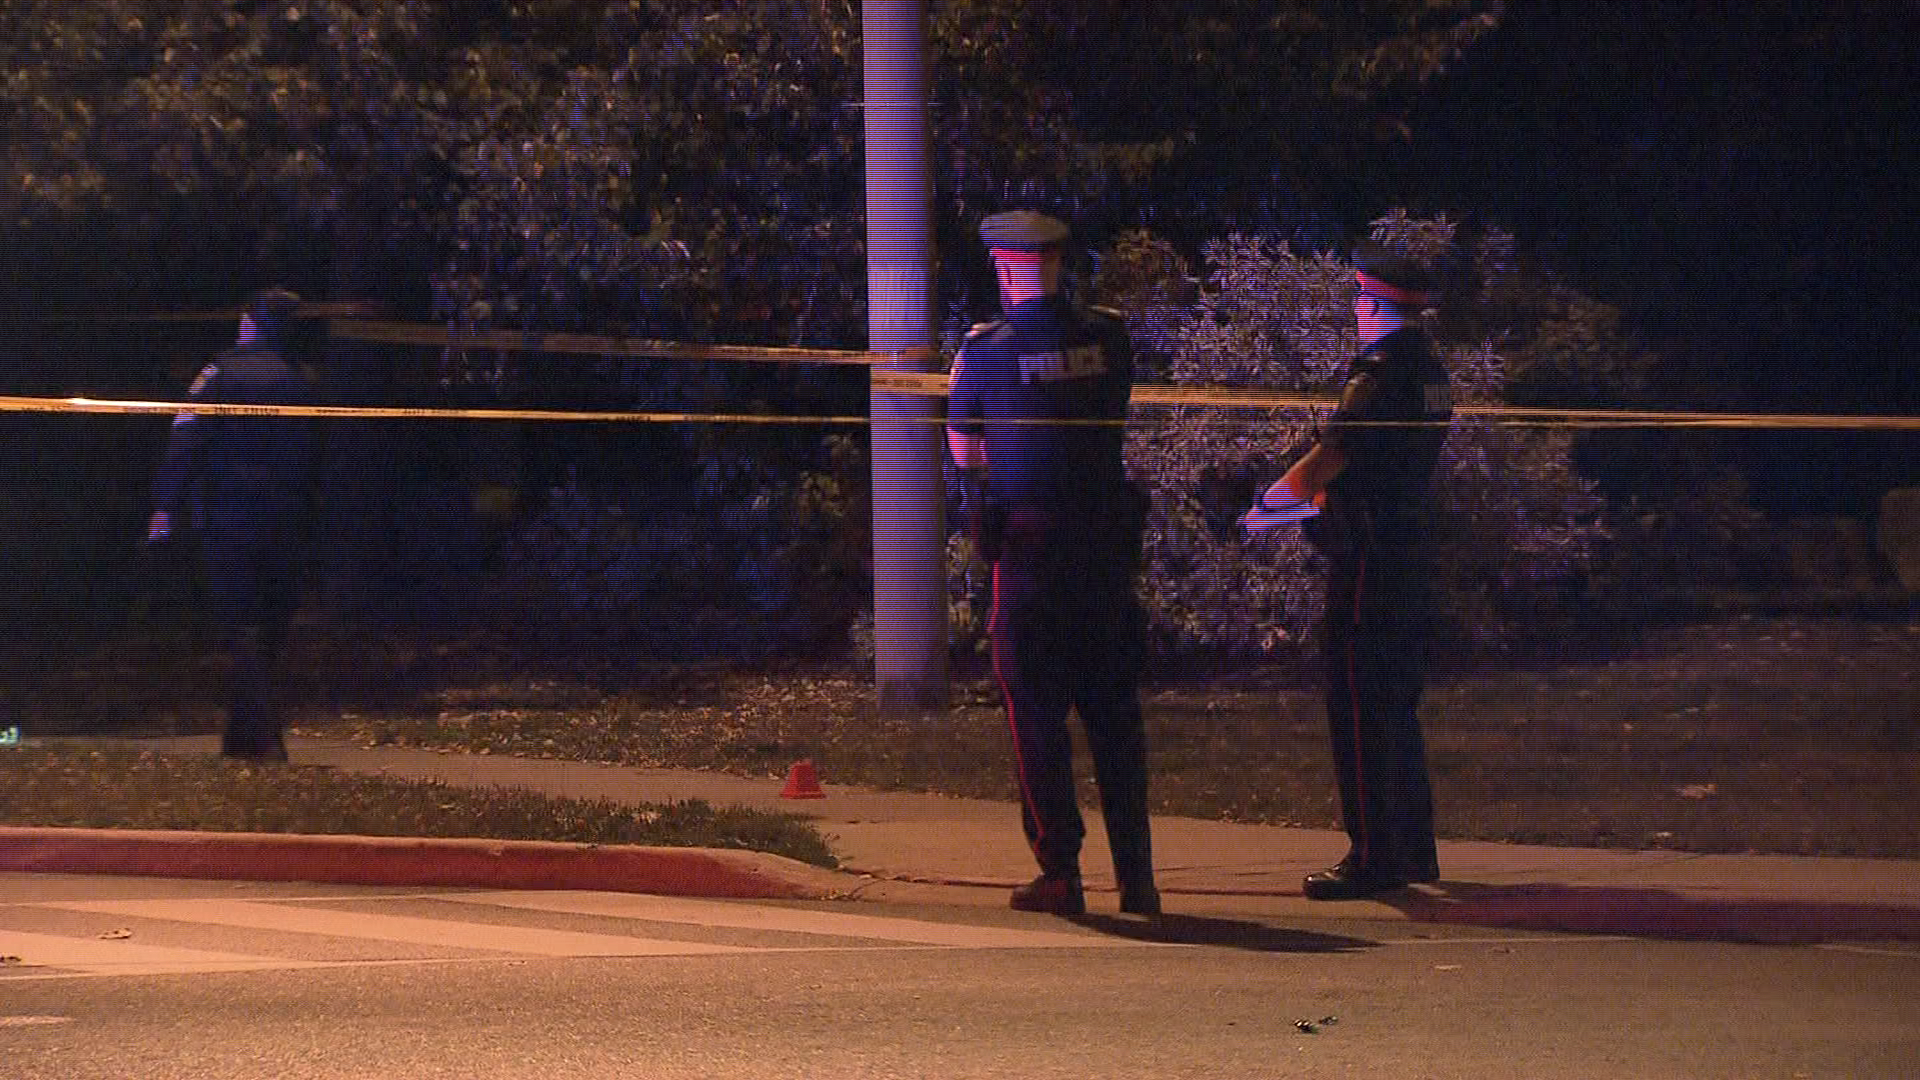 Stabbing in Brampton sends 3 people to hospital